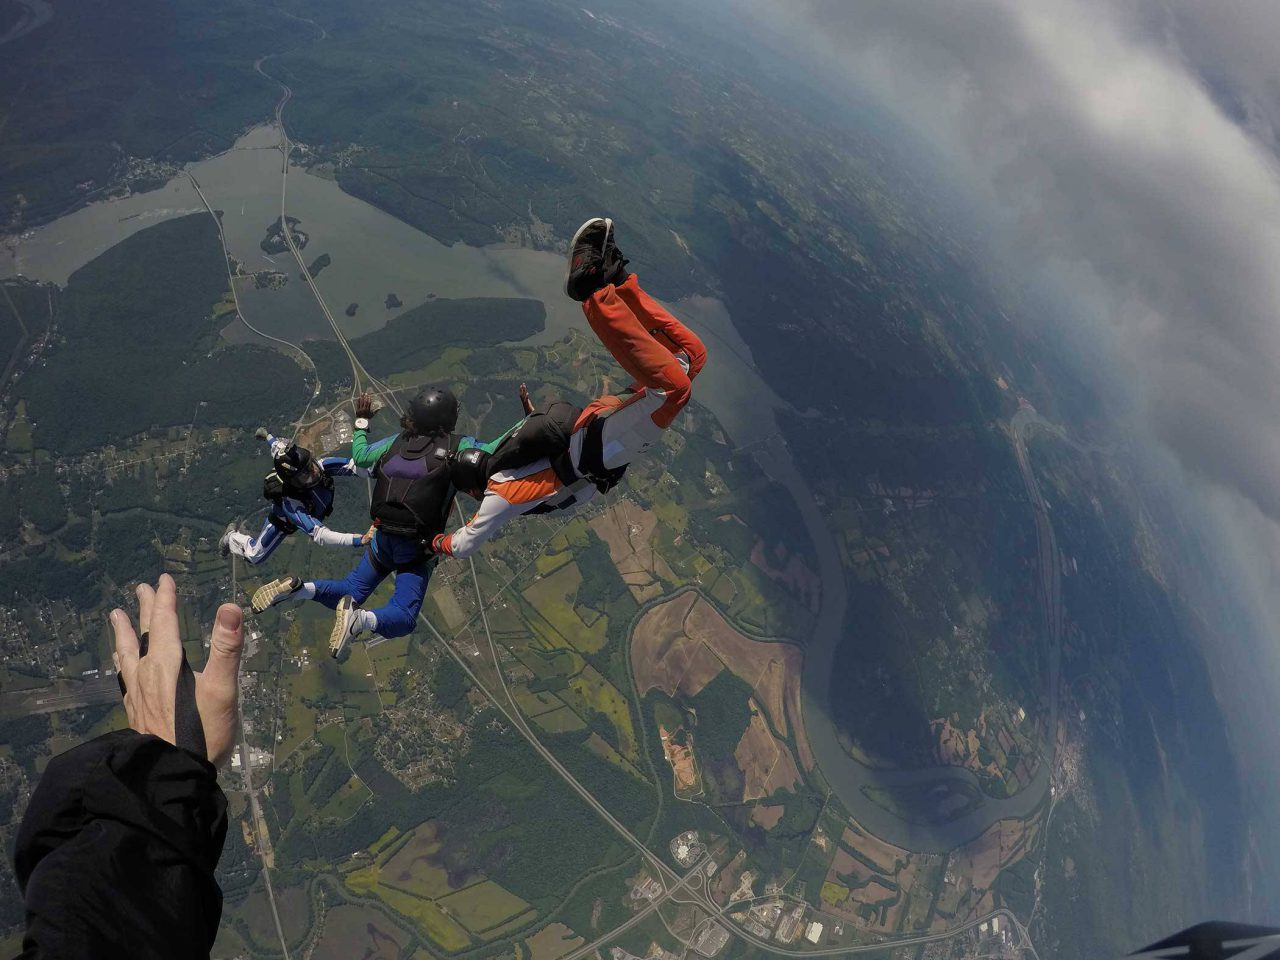 AFF student participating in hands on training while in free fall